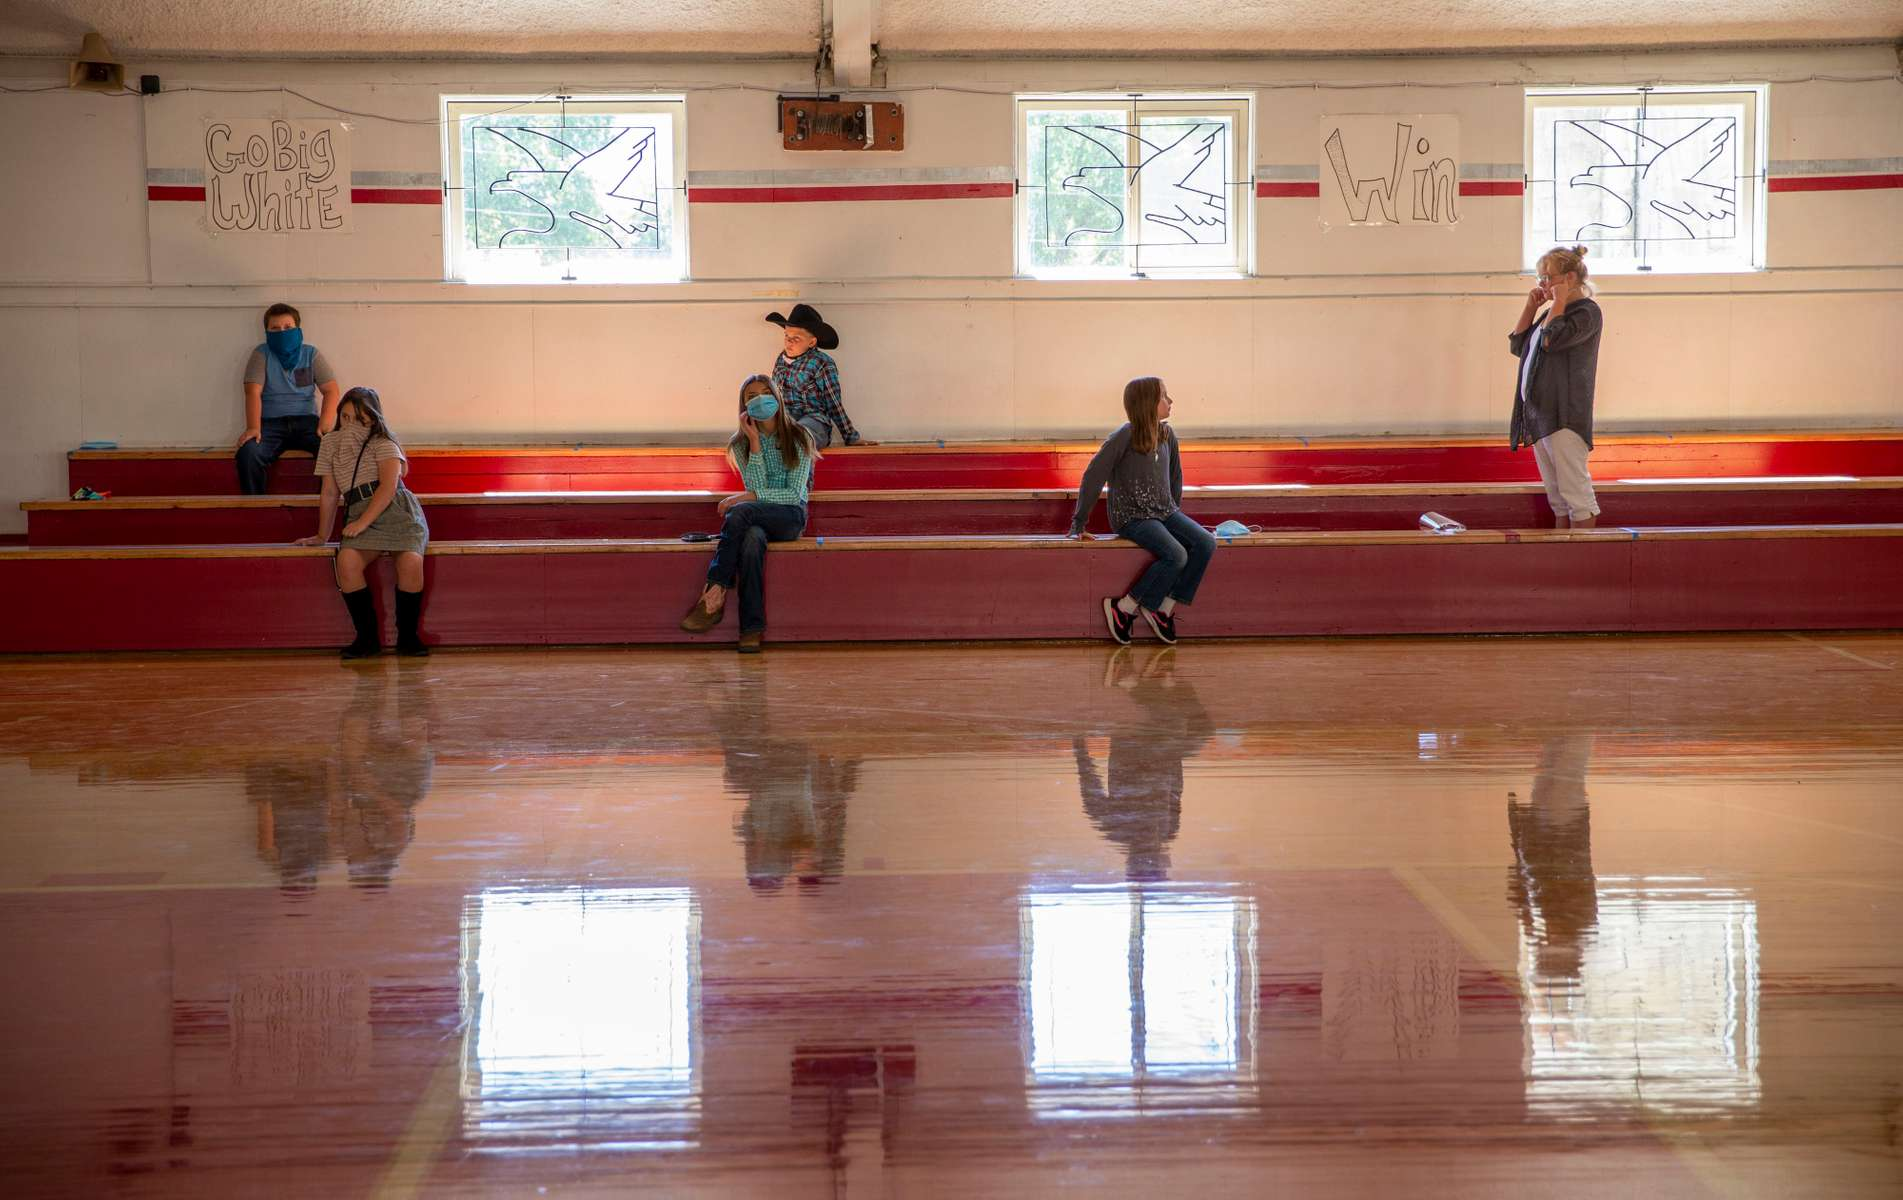 Students in the combined 4th, 5th, and 6th grade classes at Spray School wait for their turn to take school pictures on Sept. 2, 2020, in Spray, Oregon. The 48 students in grades K-12 are attending in-person classes at the school as are kids in the other two districts in  in Wheeler County.